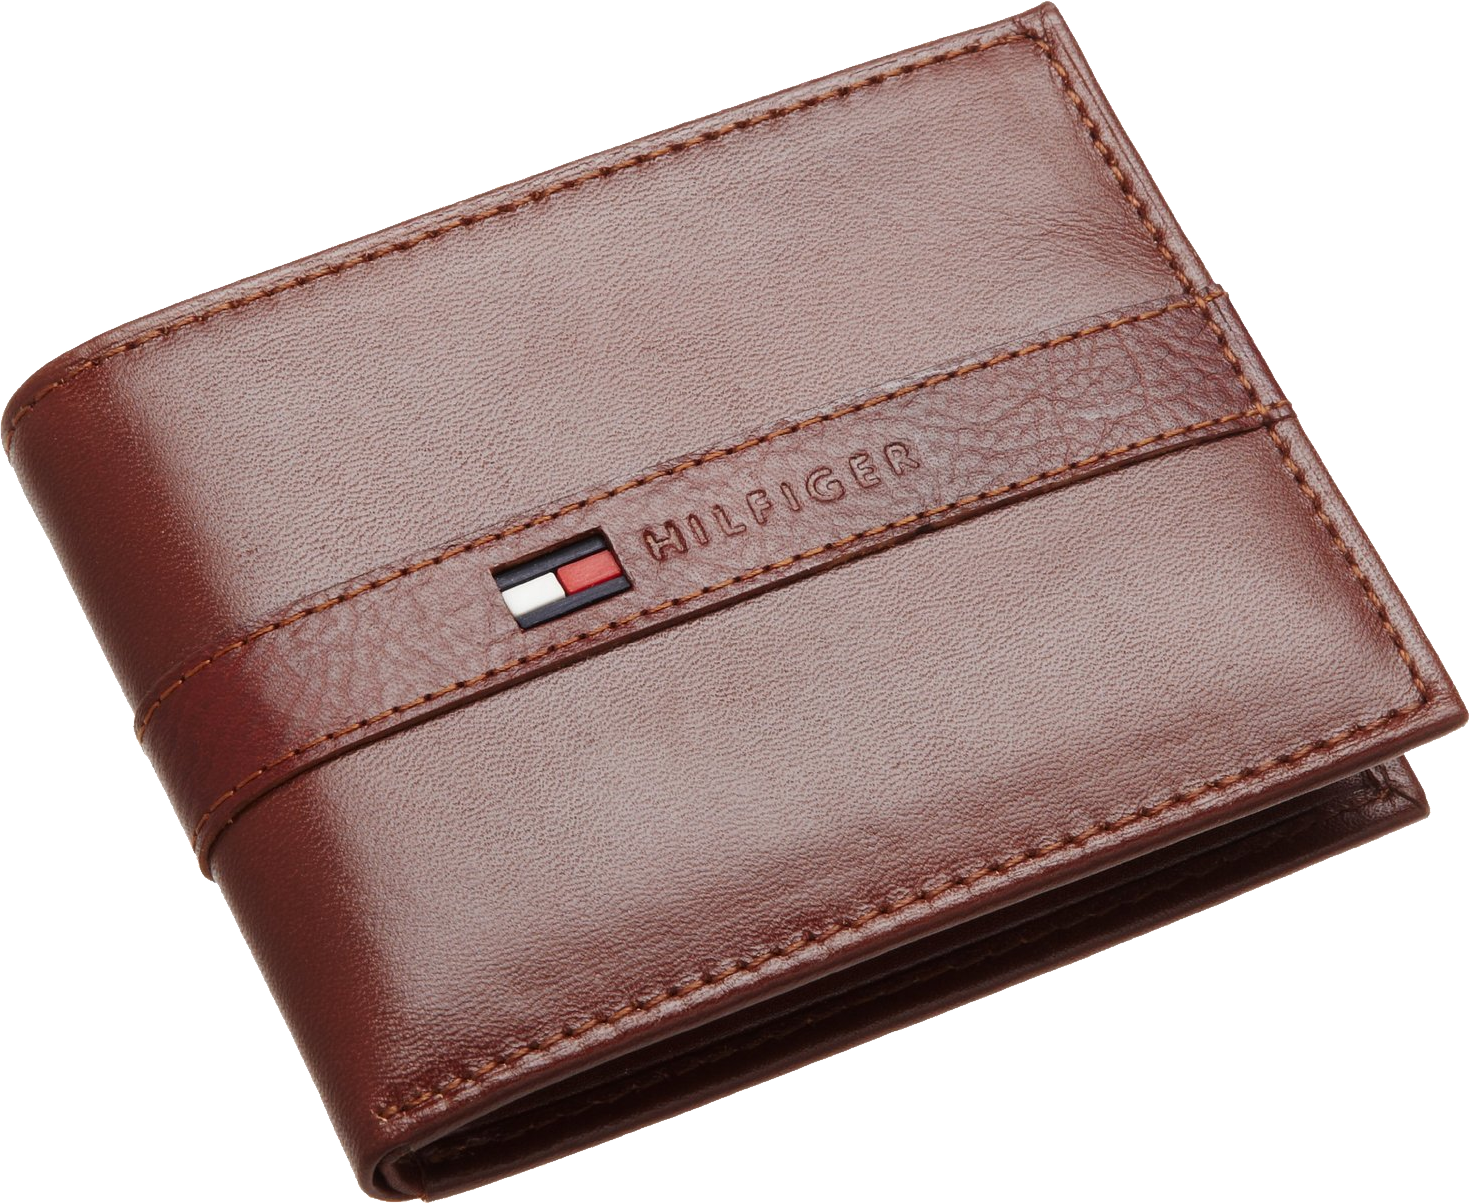 Chocolate Wallet PNG Image.